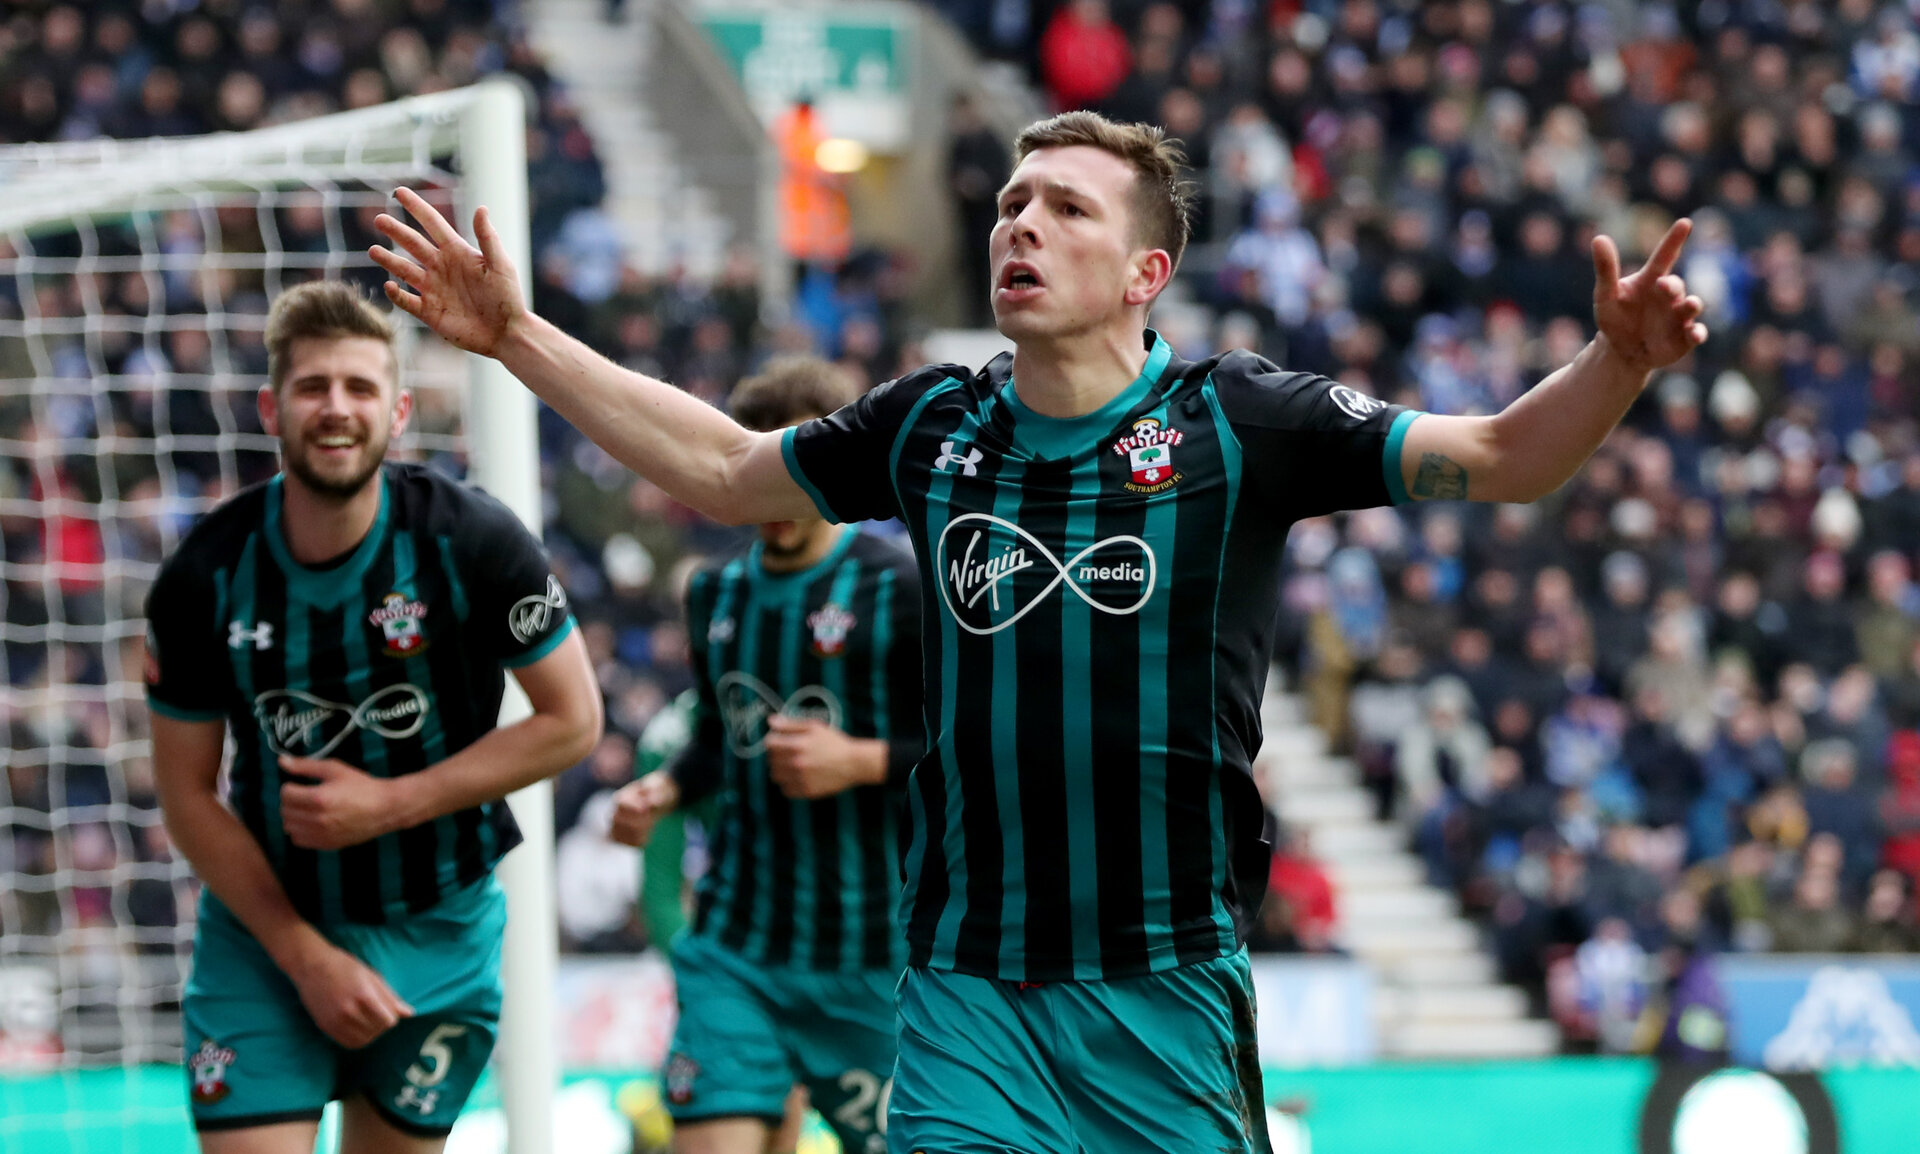 WIGAN, ENGLAND - MARCH 18: Pierre-Emile Hojbjerg of Southampton during the FA Cup Quarter Final match between Wigan Athletic and Southampton FC at the DW Stadium on March 18, 2018 in Wigan, England. (Photo by Matt Watson/Southampton FC via Getty Images)